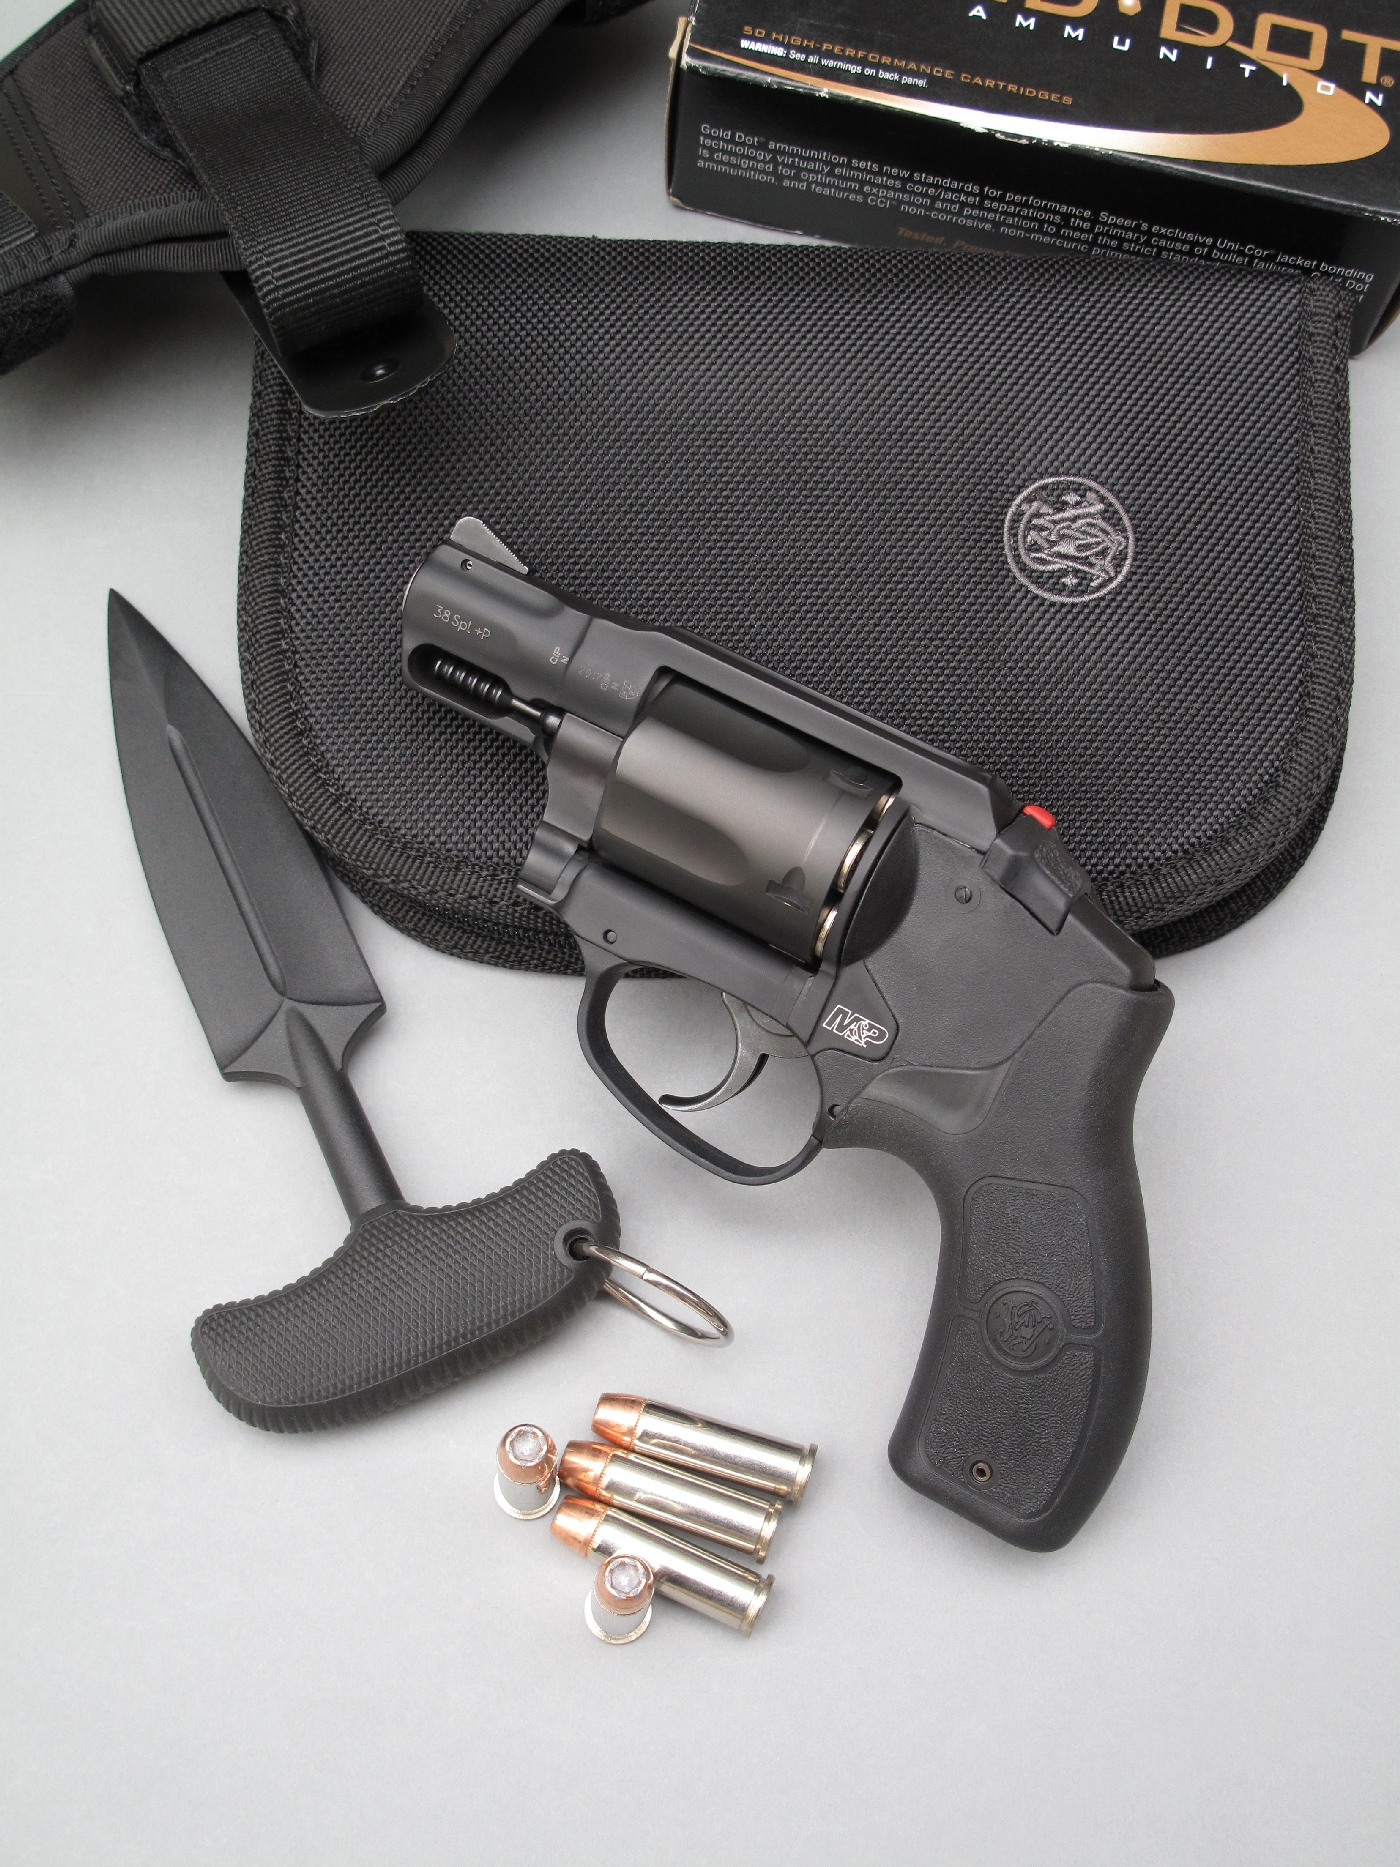 Essai armes | Revolver Smith & Wesson « Military & Police ...